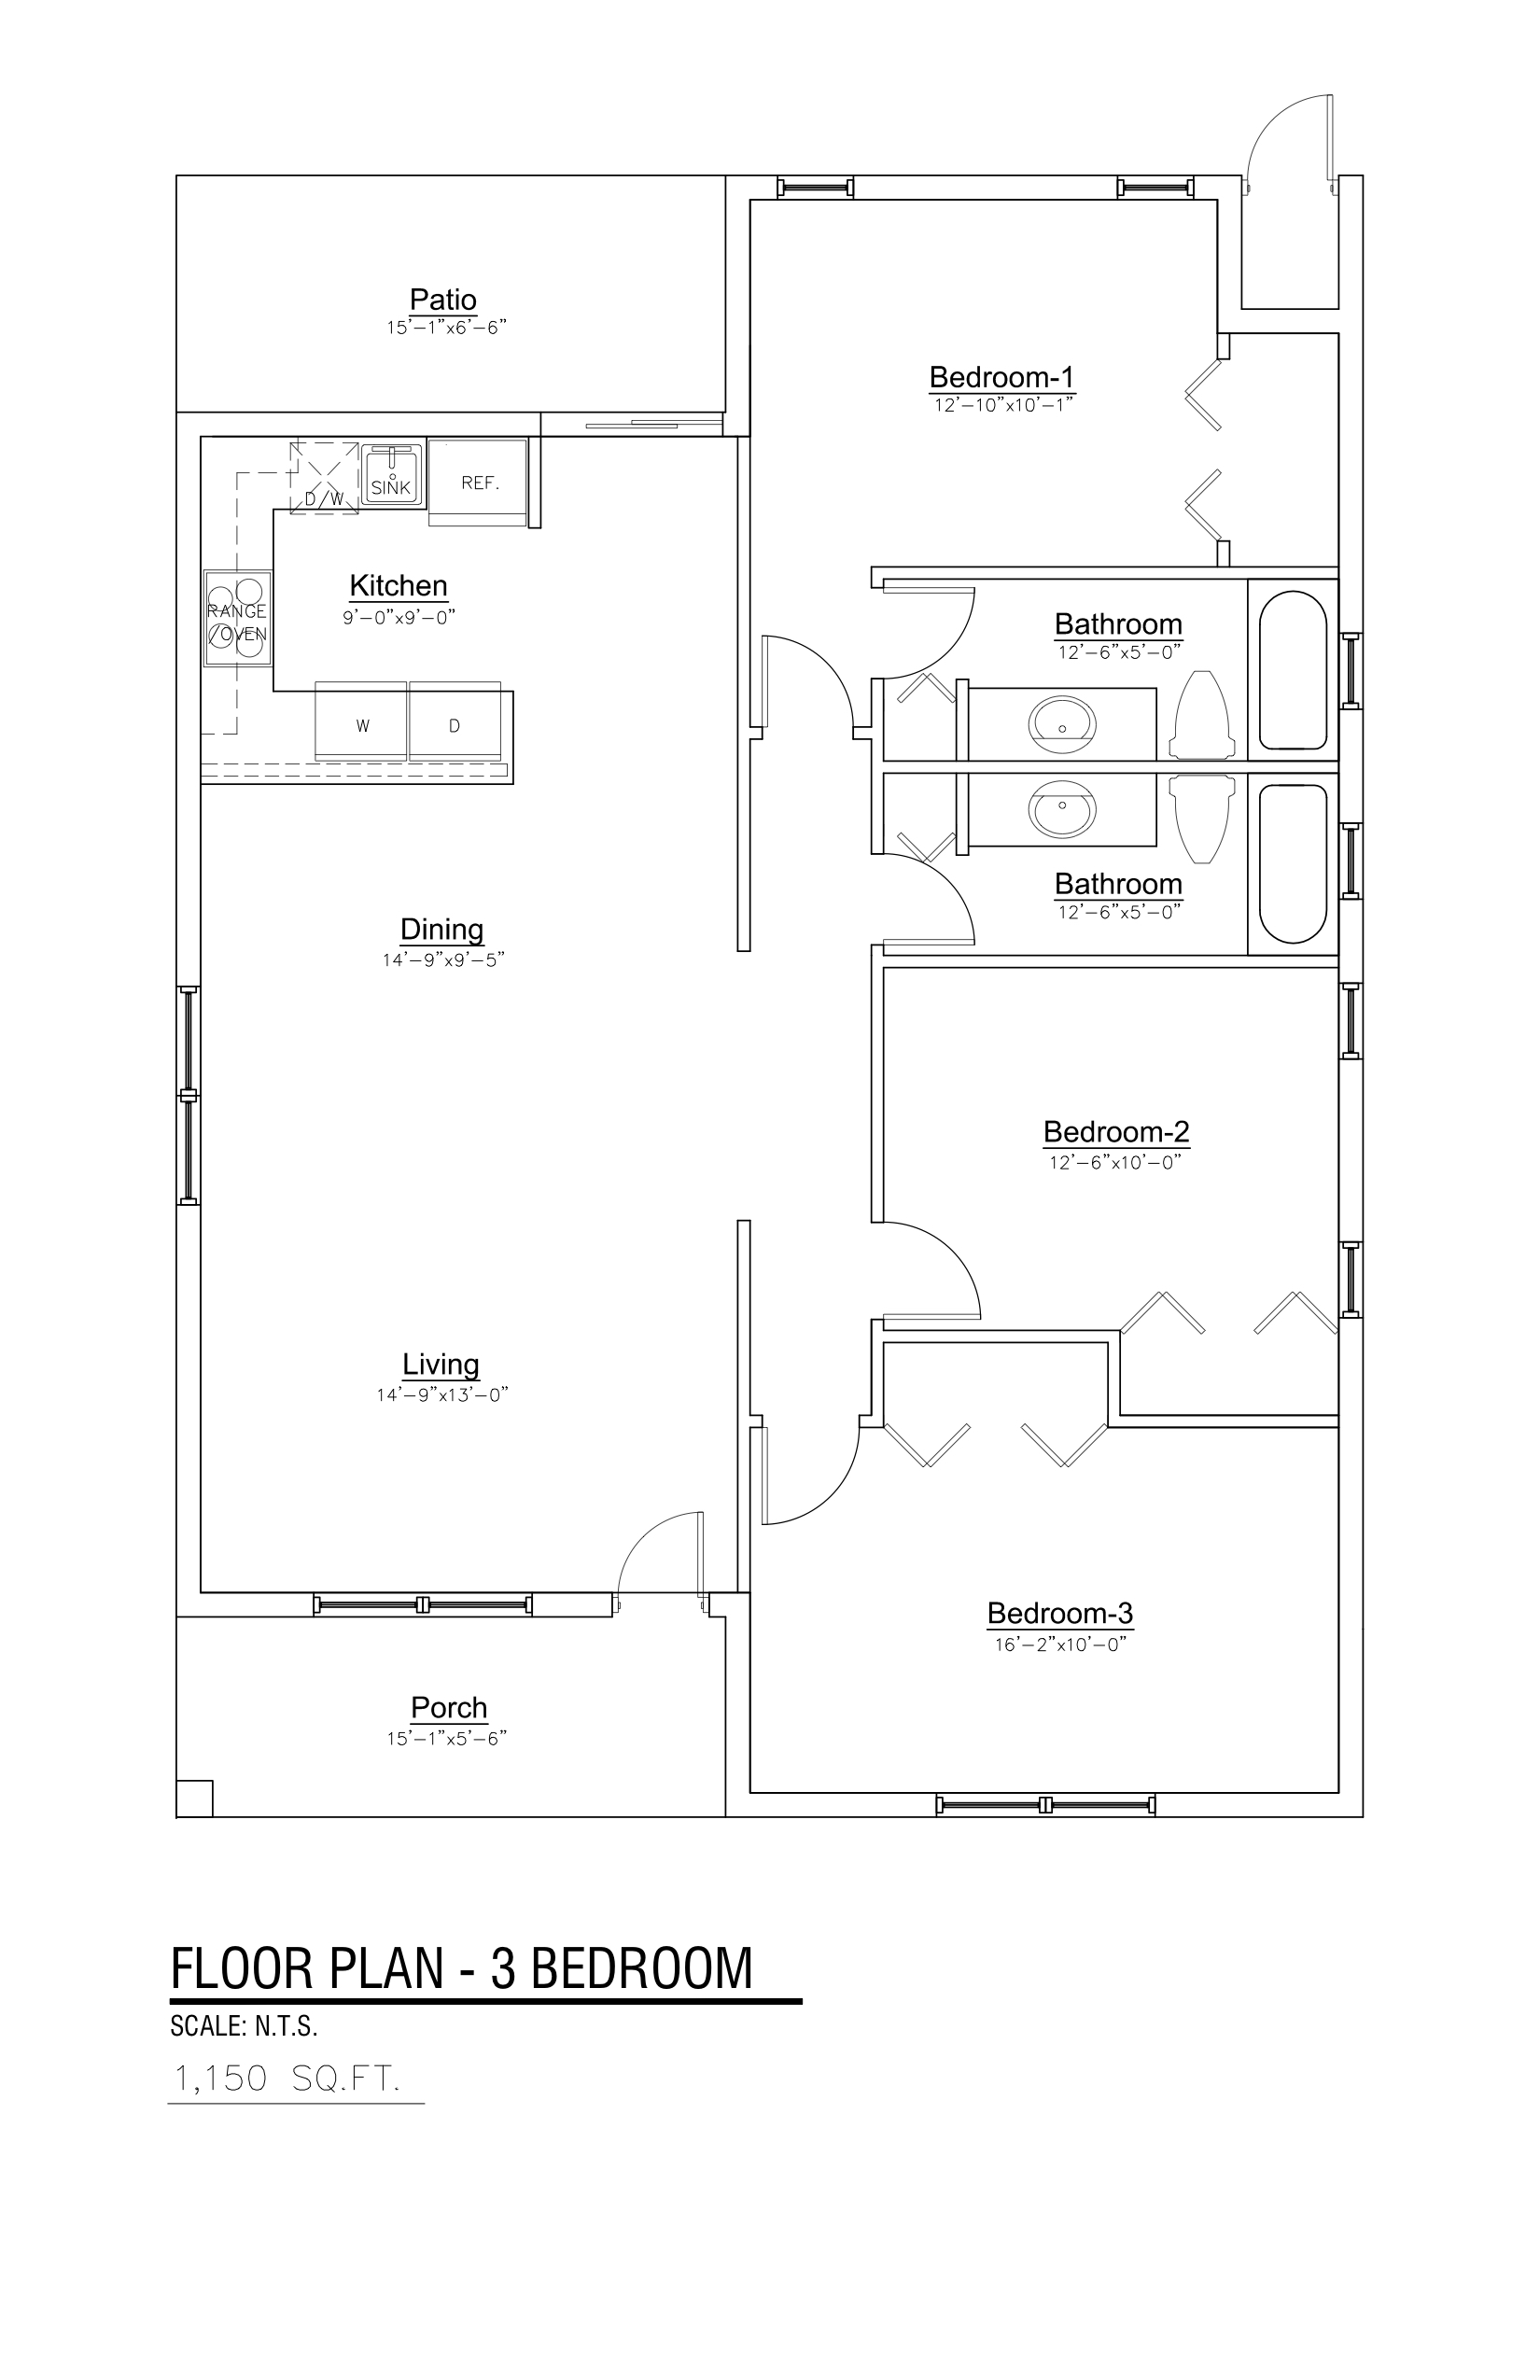 3-BEDROOM FLOOR PLAN